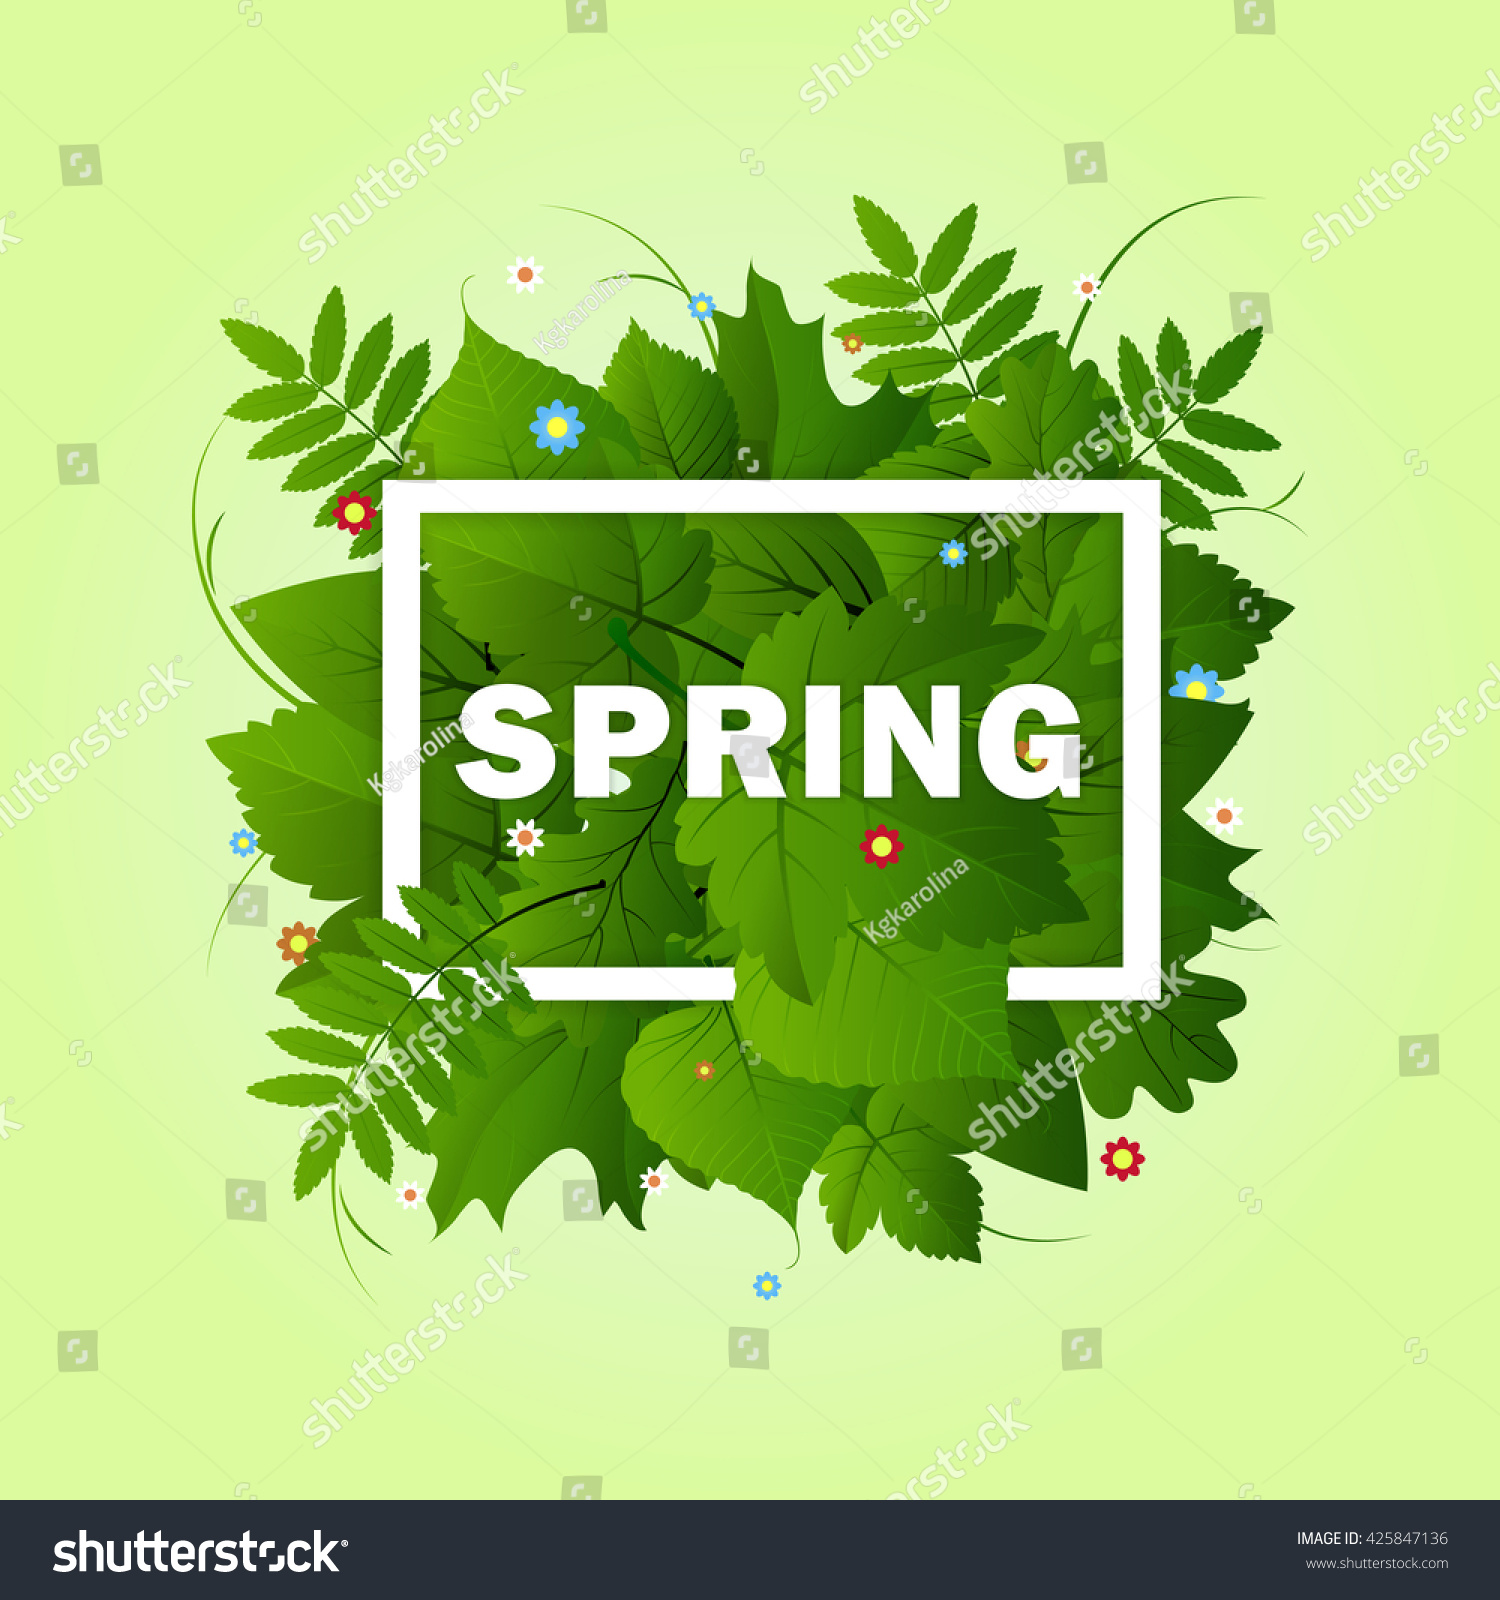 Spring Green Leaves And Flowers Background With Plants: Spring White Frame Green Different Leaves Stock Vector